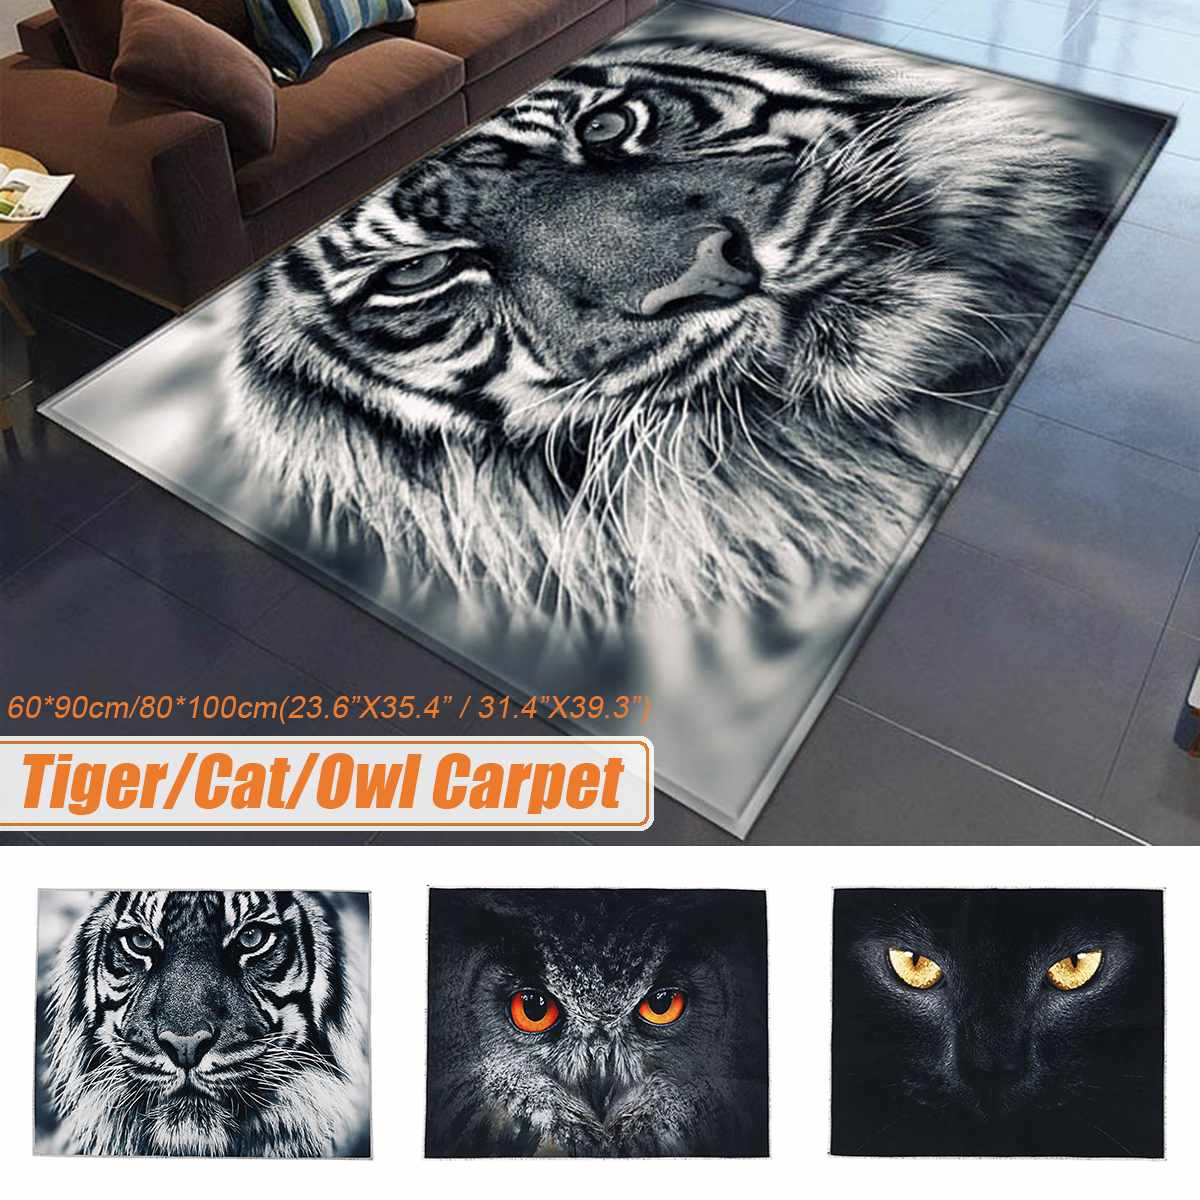 3D Cartoon Tiger Cat Owl Animal Carpet Living Room Table Mat Waterproof Non-slip Polyester Carpet Kids Bedroom Door Floor Rug